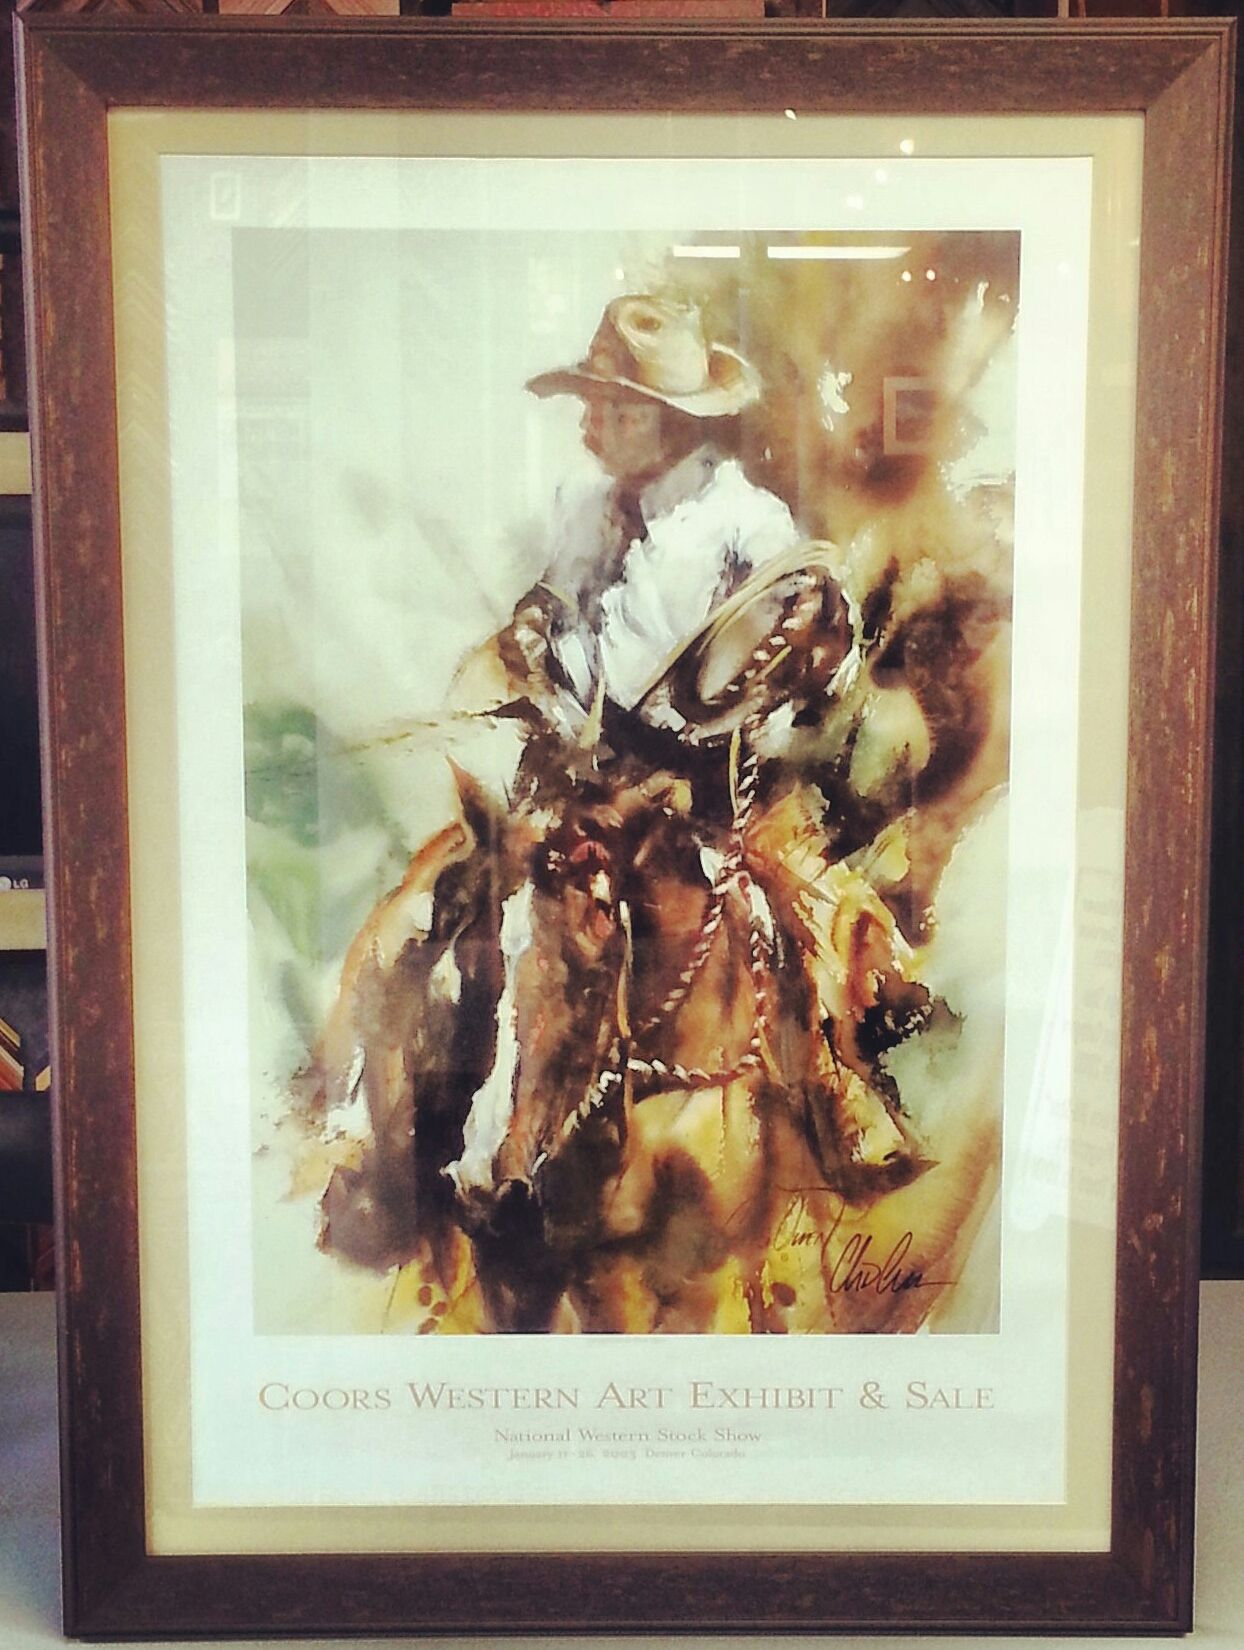 Custom framed +National Western Stock Show limited edition #Coors print. Custom framed by FastFrame of LoDo. Frame by @Larson-Juhl. #art #framing #denver #colorado #nwss